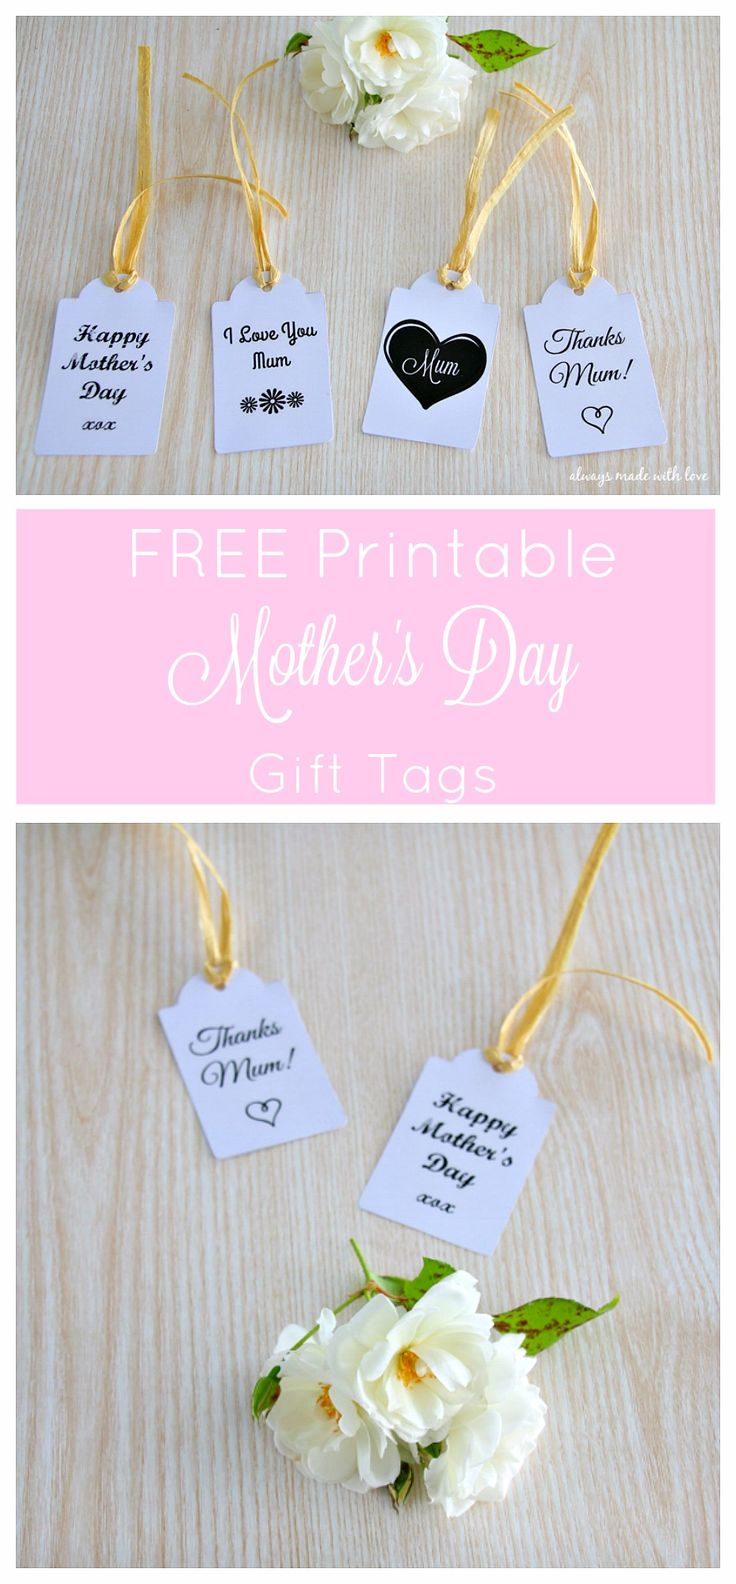 Mother's Day Gift Tags - FREE Printable - a simple yet pretty finishing touch to your gifts